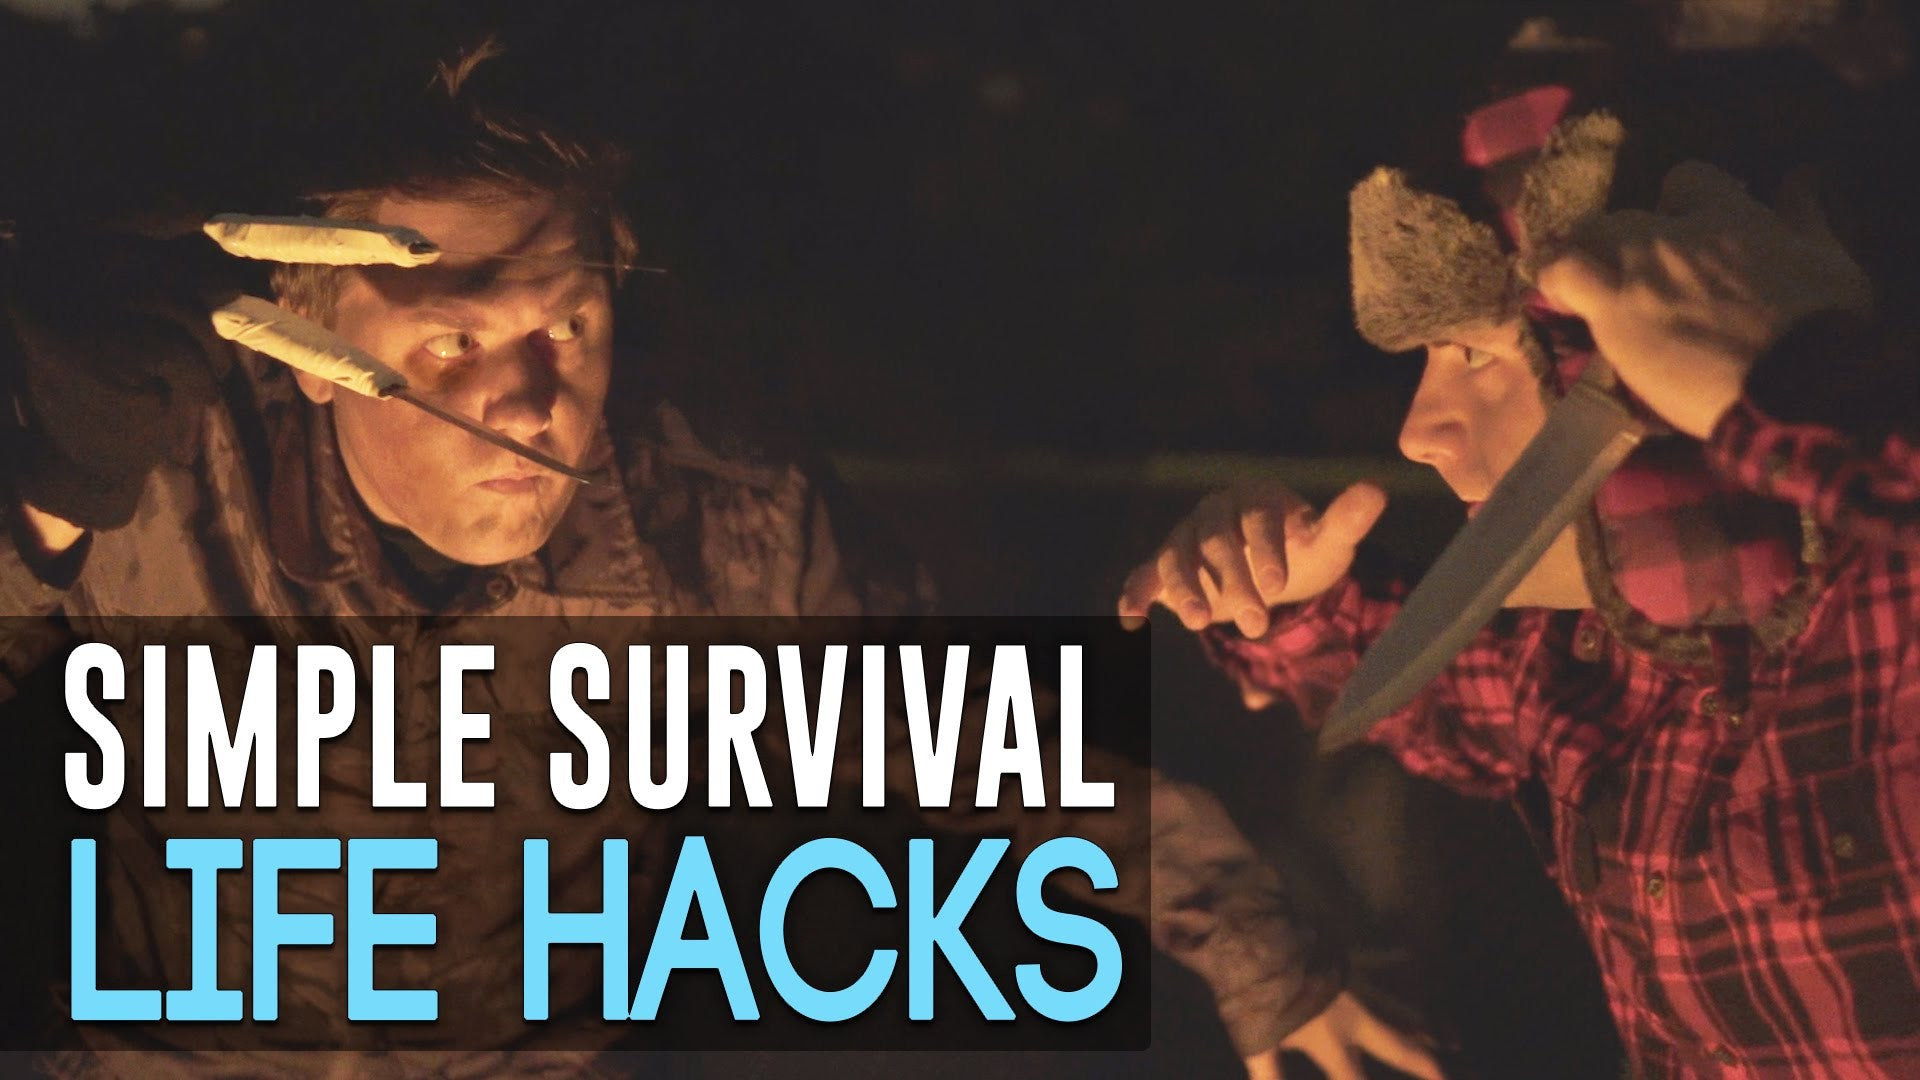 Simple Survival Life Hacks (Video)